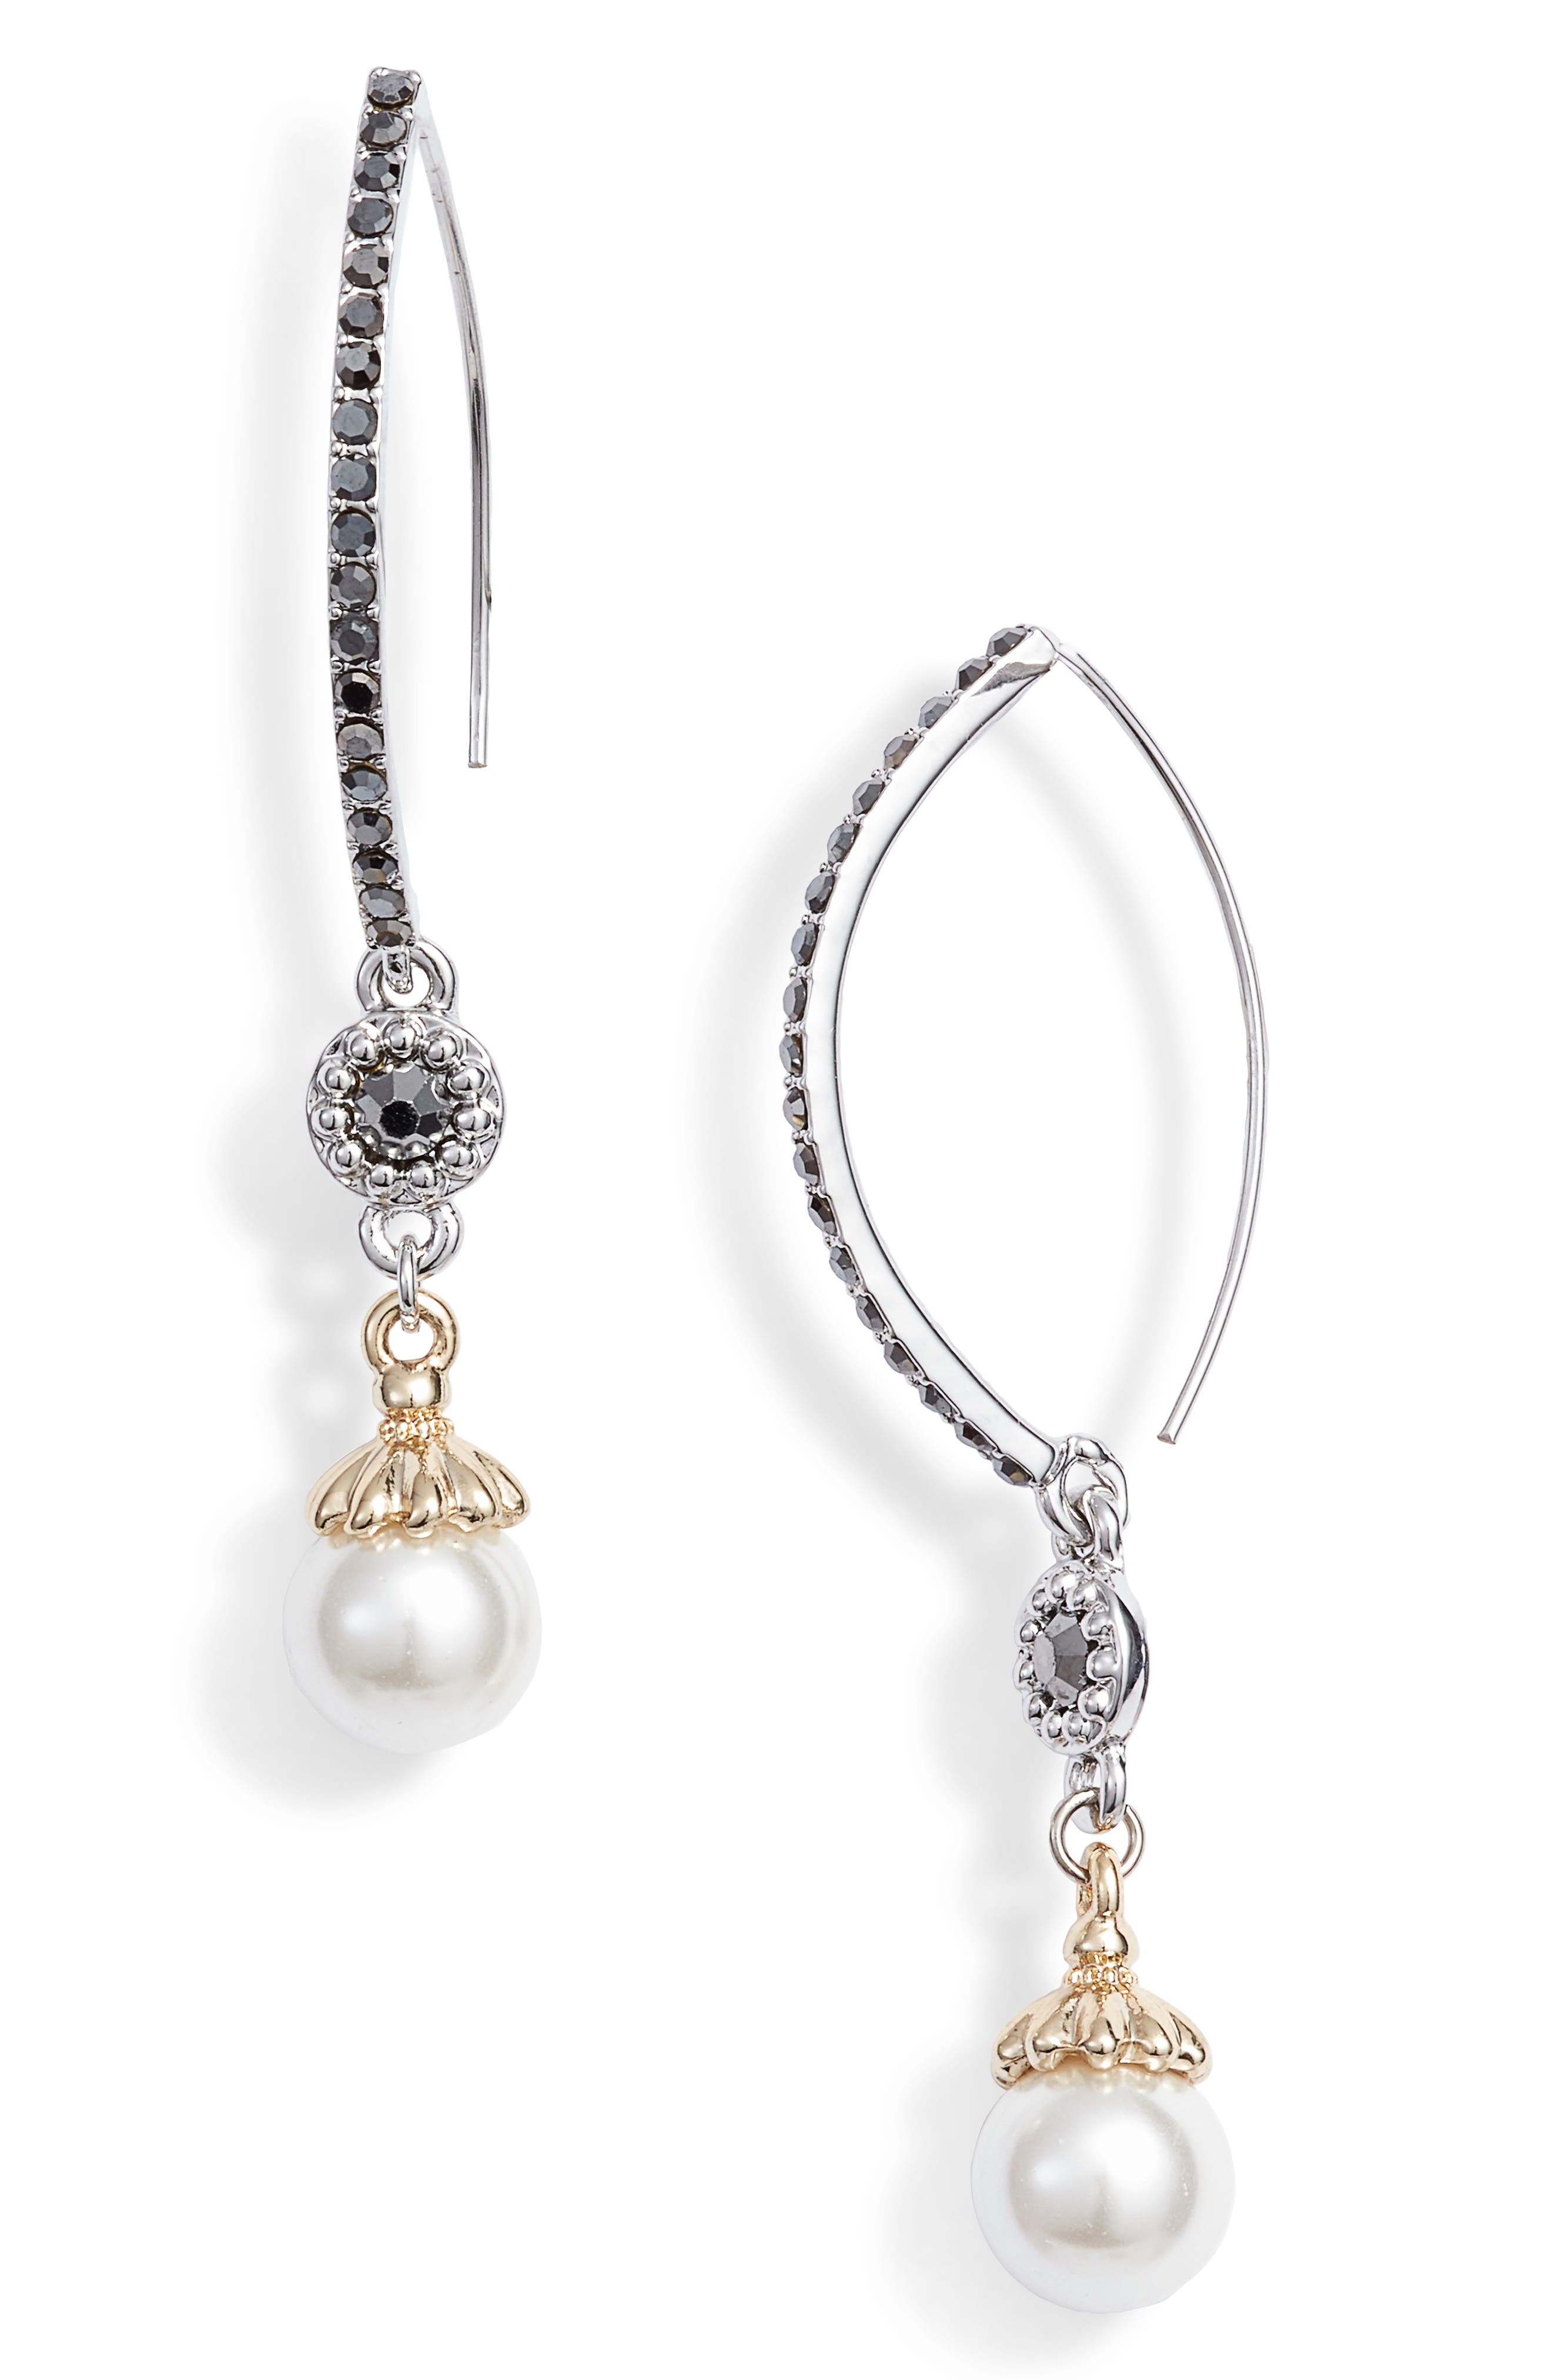 JENNY PACKHAM Imitation Pearl Threader Earrings, Main, color, PEARL/ SILVER